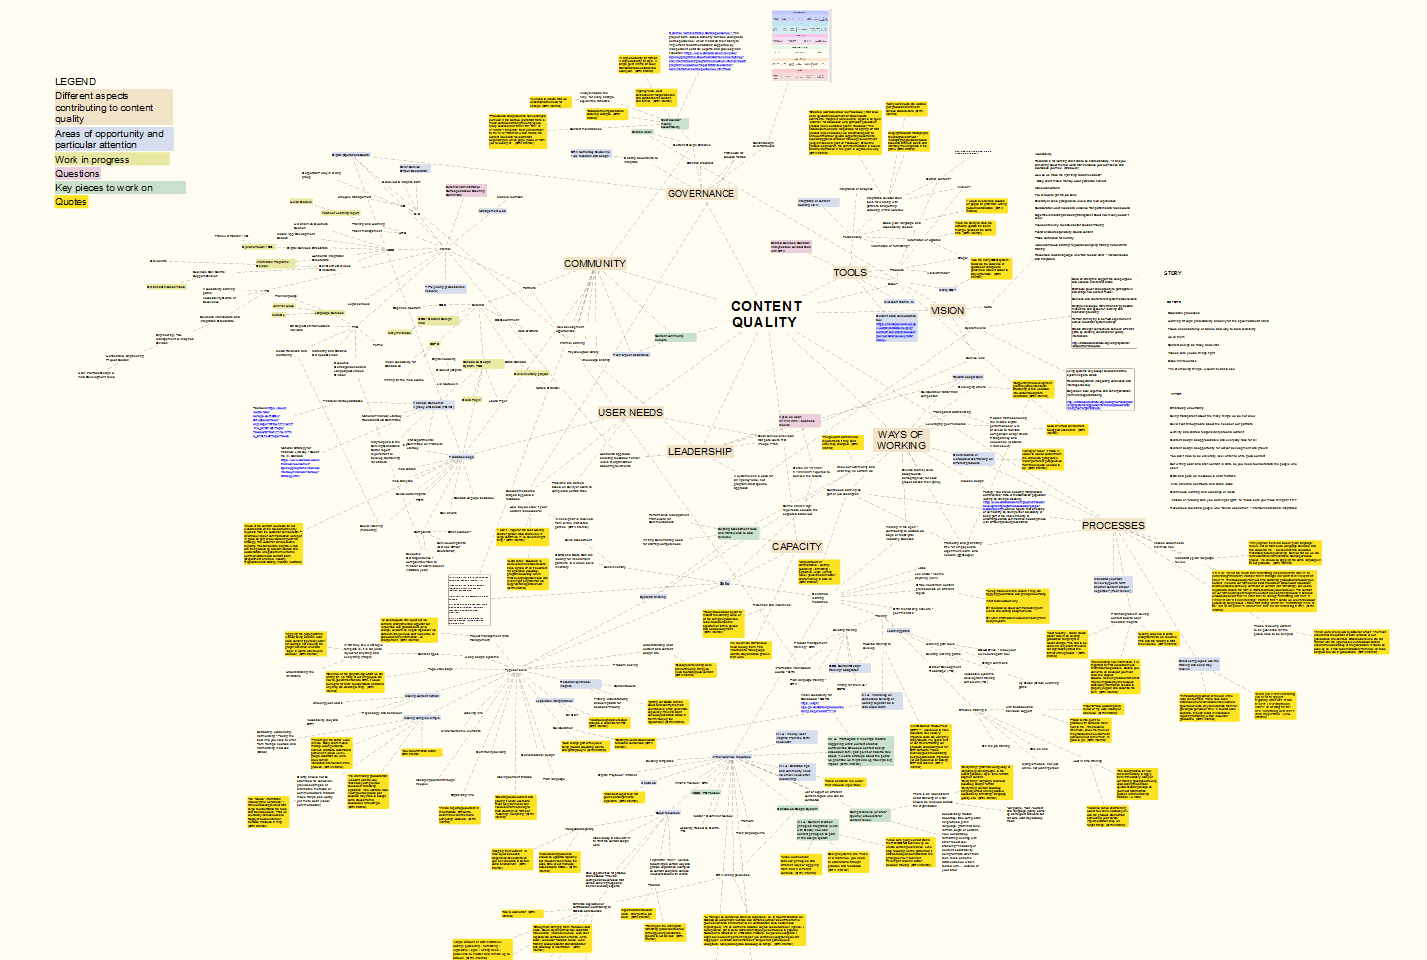 An ecosystem map of ideas that looks like a giant mind map made up of many different pieces.